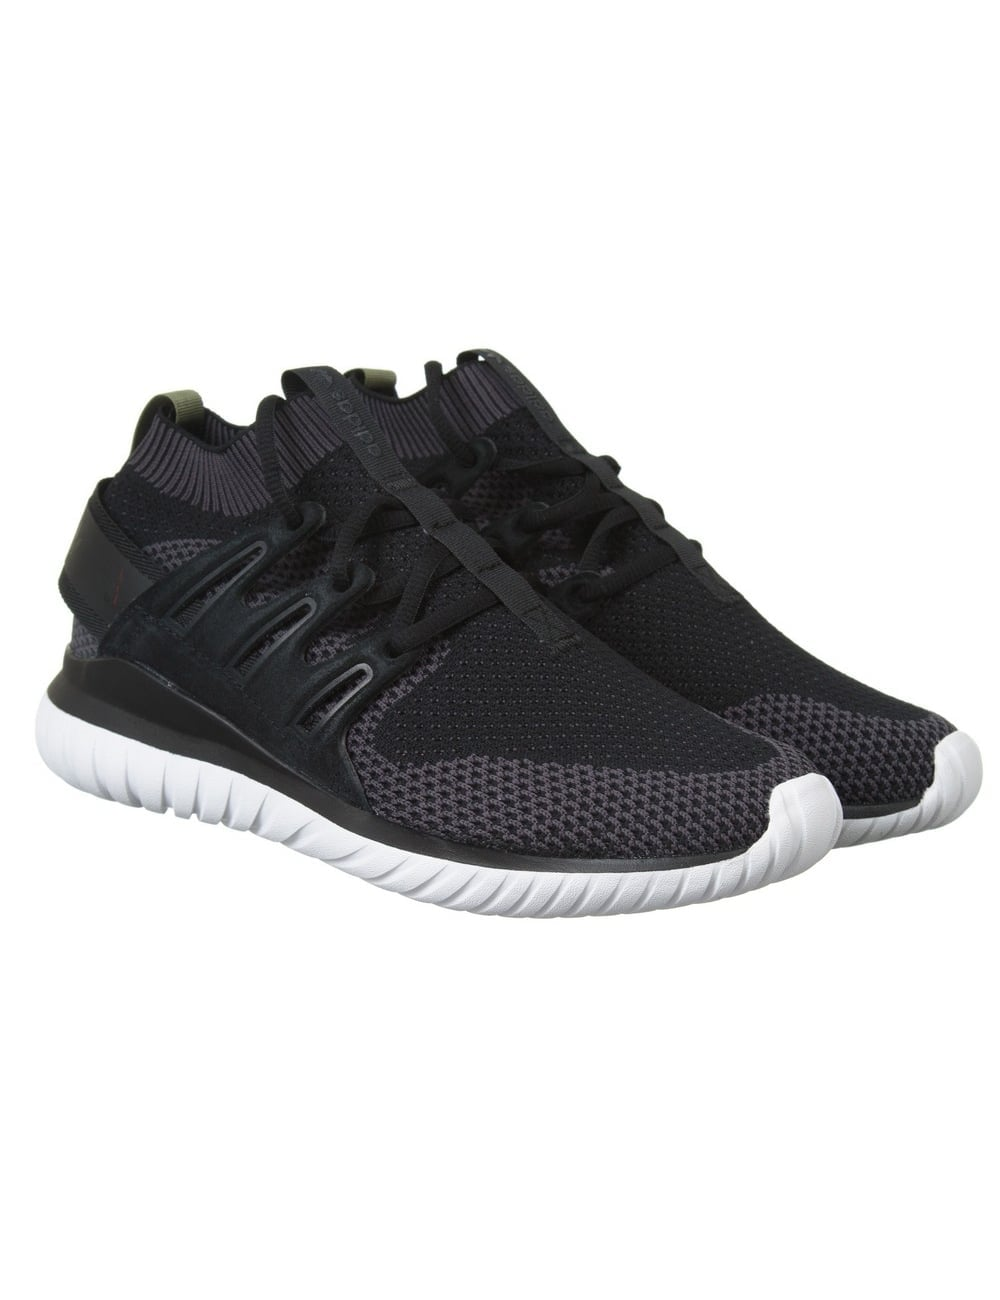 quality design b4e97 7797b Tubular Nova PK Shoes - Black/Core Black